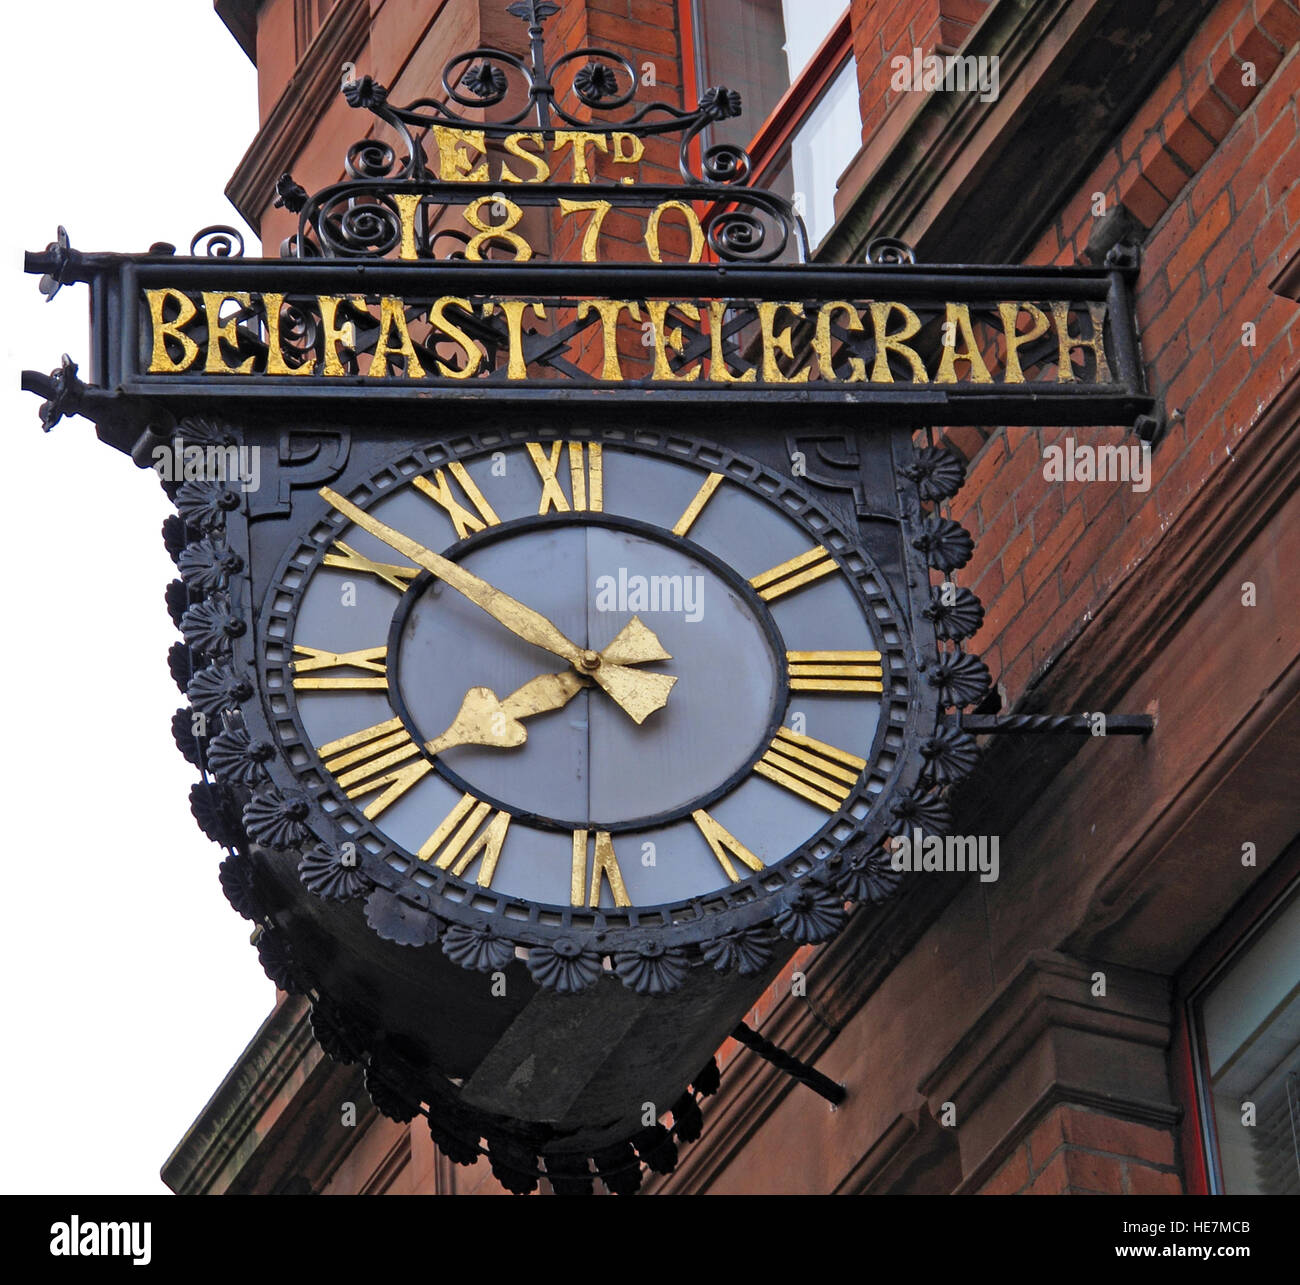 Belfast Telegraph,estd 1870,clock,Belfast Telegraph House,33 Clarendon Road,Belfast, Northern Ireland,UK - Stock Image